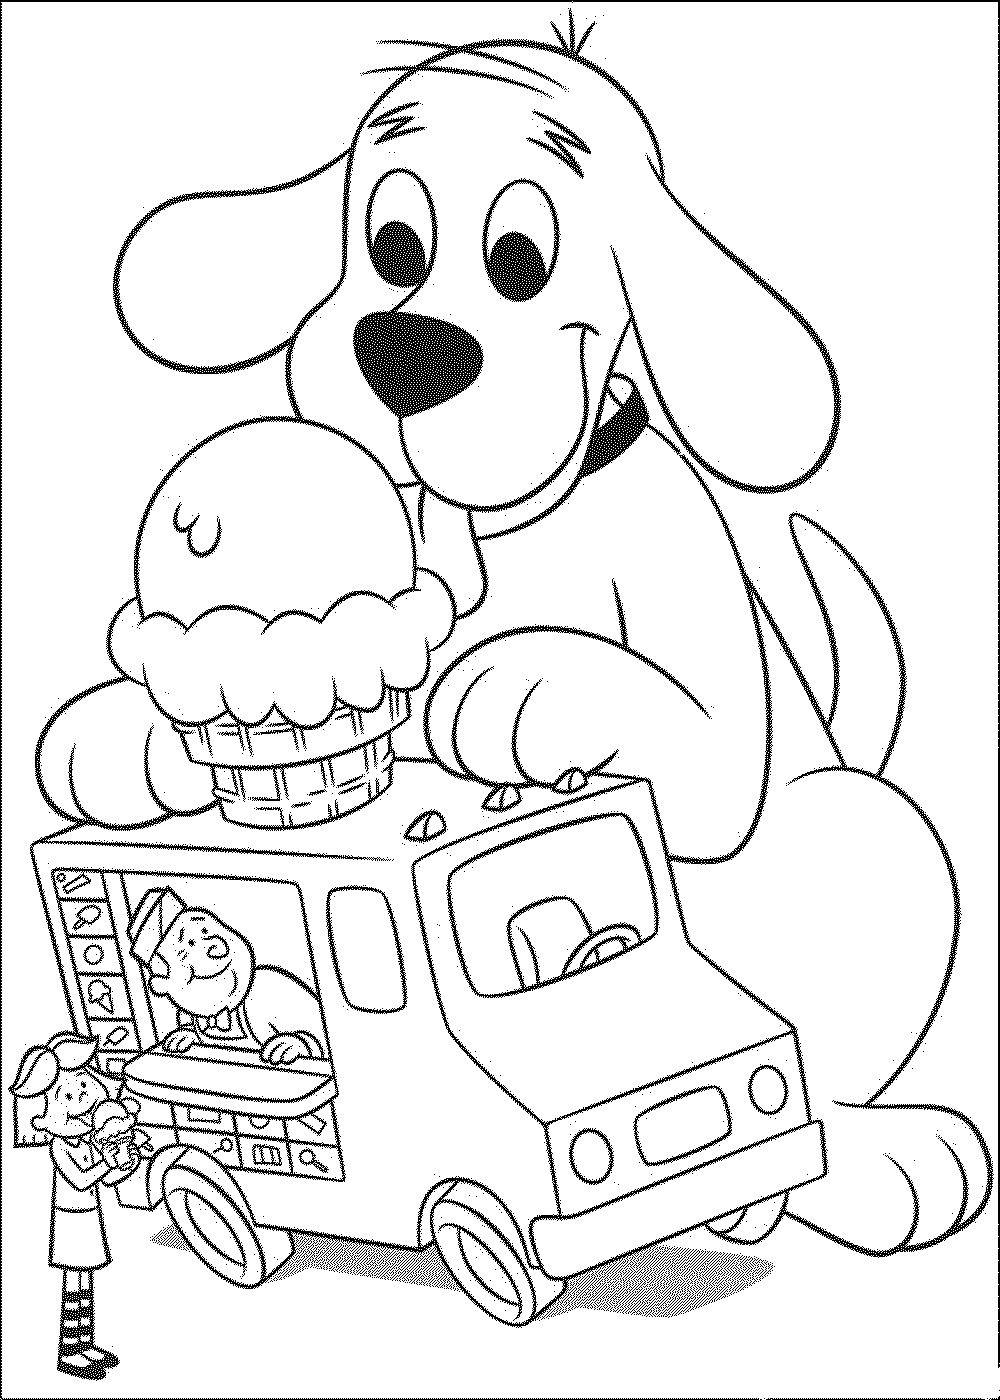 dog coloring pages for preschoolers dog coloring pages for kids preschool and kindergarten pages coloring for preschoolers dog